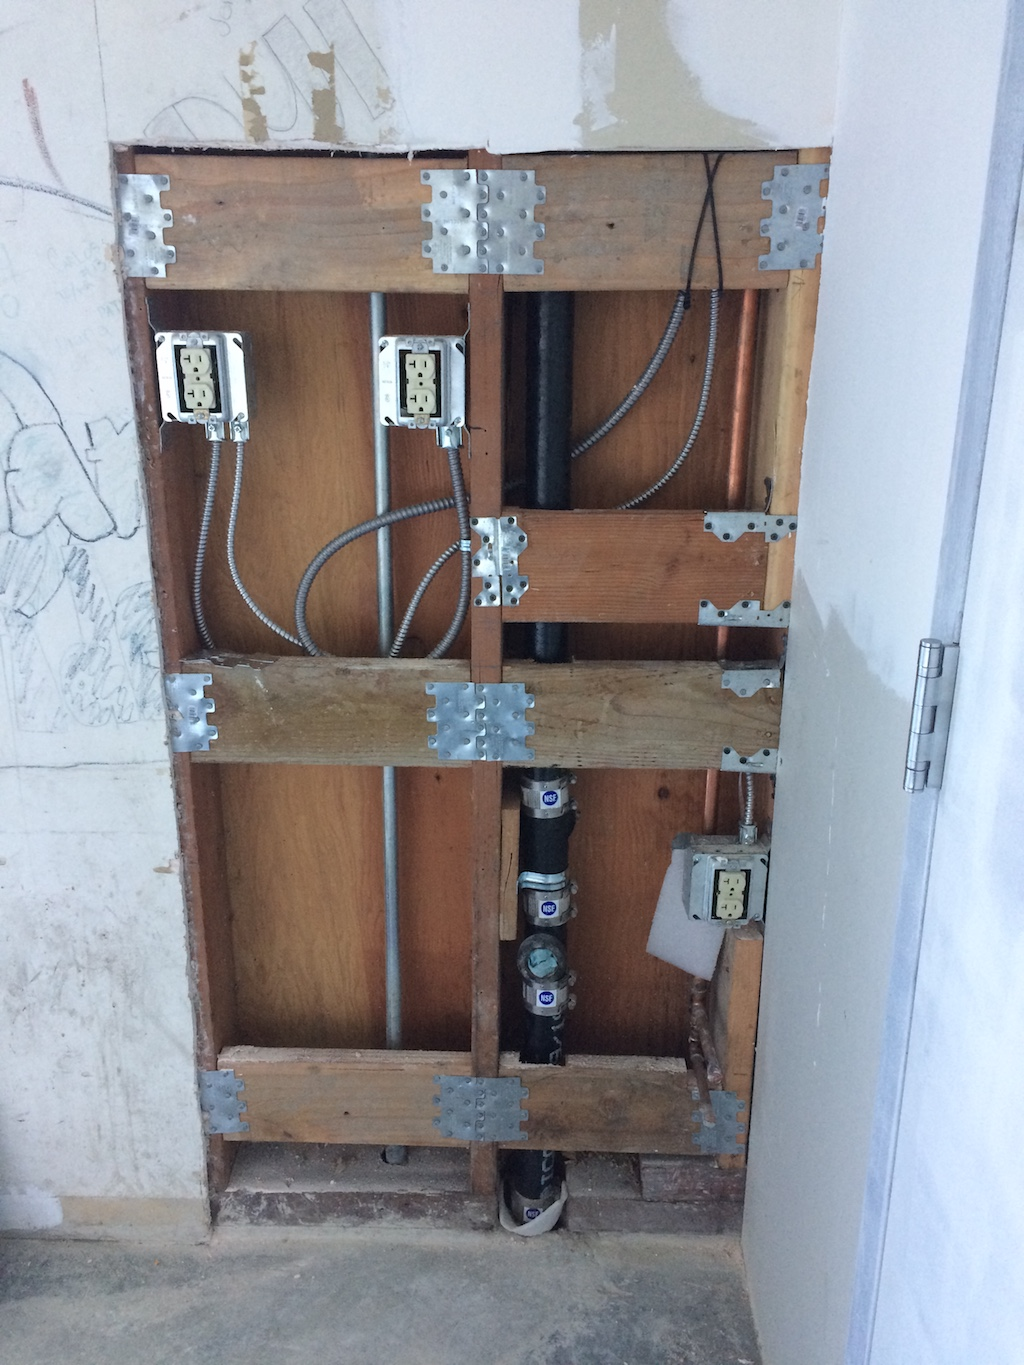 New Electrical Wiring And Sink Plumbing